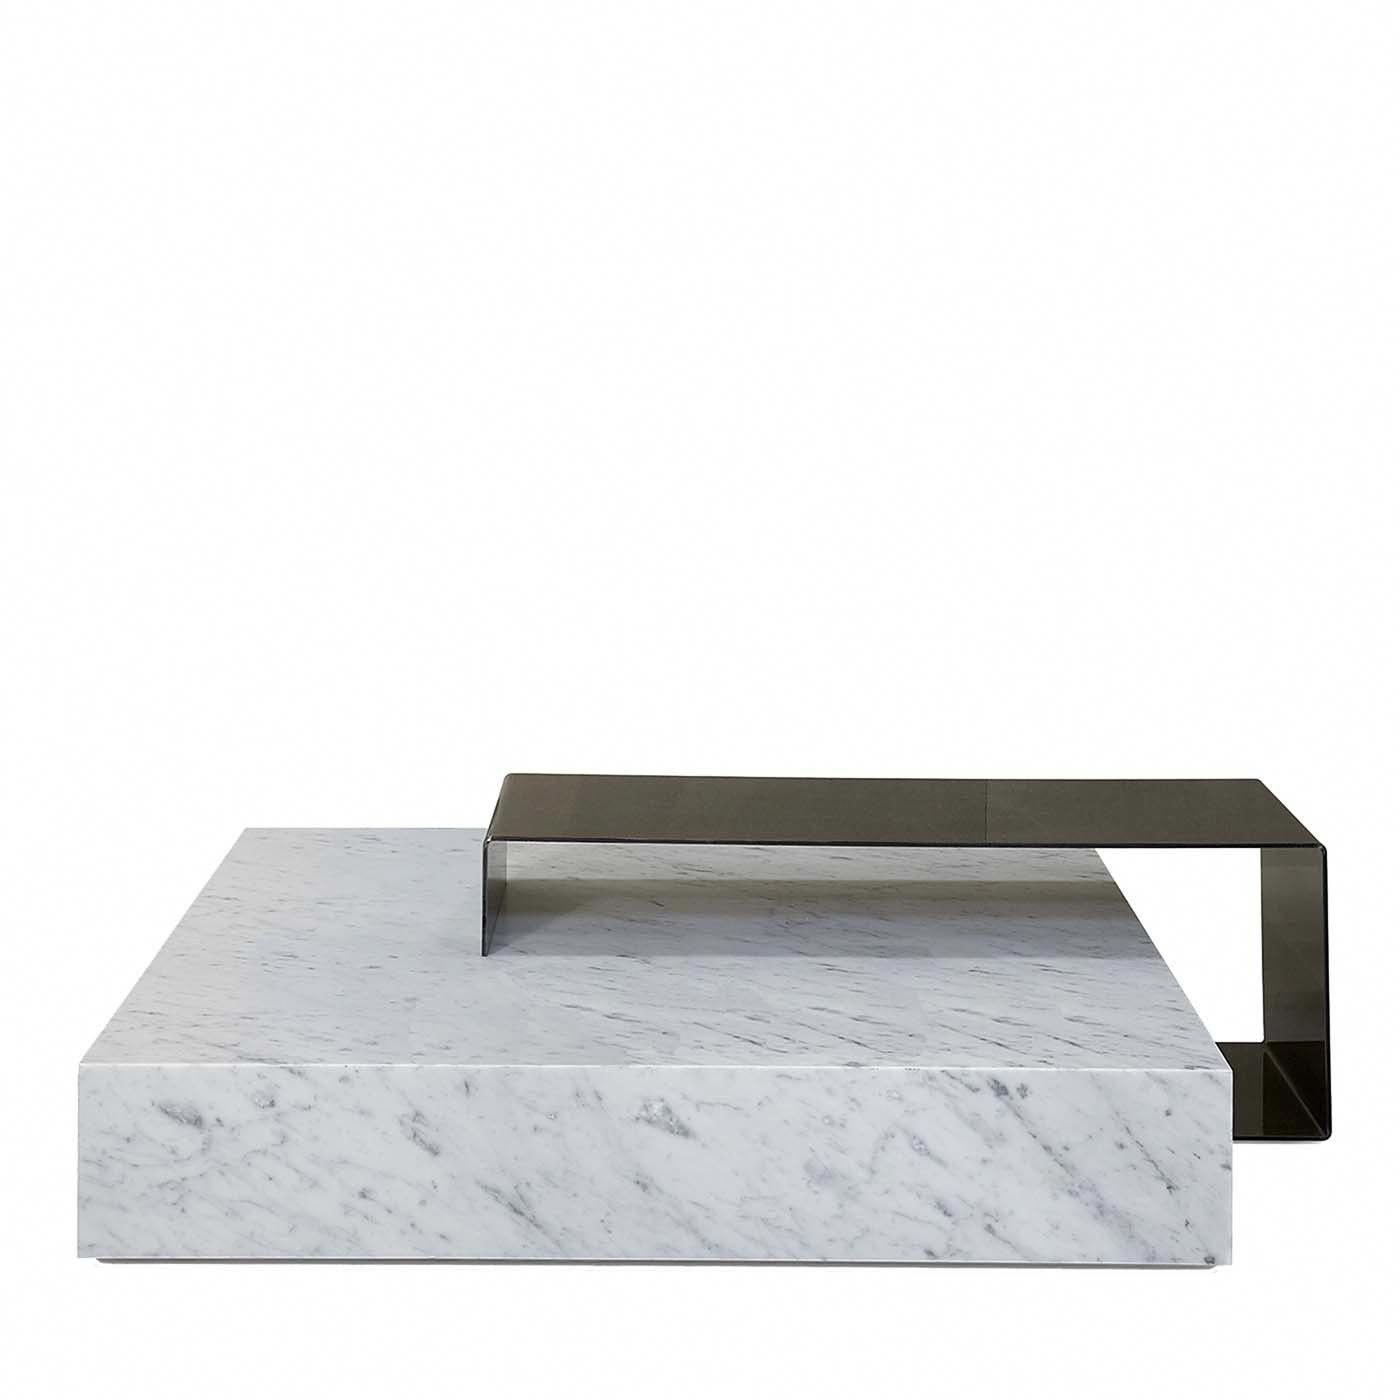 Ta Volo Coffee Table is part of Sectional Living Room Coffee Table - Designed by Franz Siccardi, this abstract sculptural work of art will infuse any decor with spellbinding sophistication  A solid square base fashioned out of white Carrara marble merges with an open iron frame, their geometric harmony and material contrast creating breathtaking lightness and textural depth  Daring and radical, Ta Volo®, a deft portmanteau, bridges the Italian words  volo  (flying) and  tavolo  (table), epitomizing the dynamic interplay of power of nature (through stone) and man (through iron) present in this work